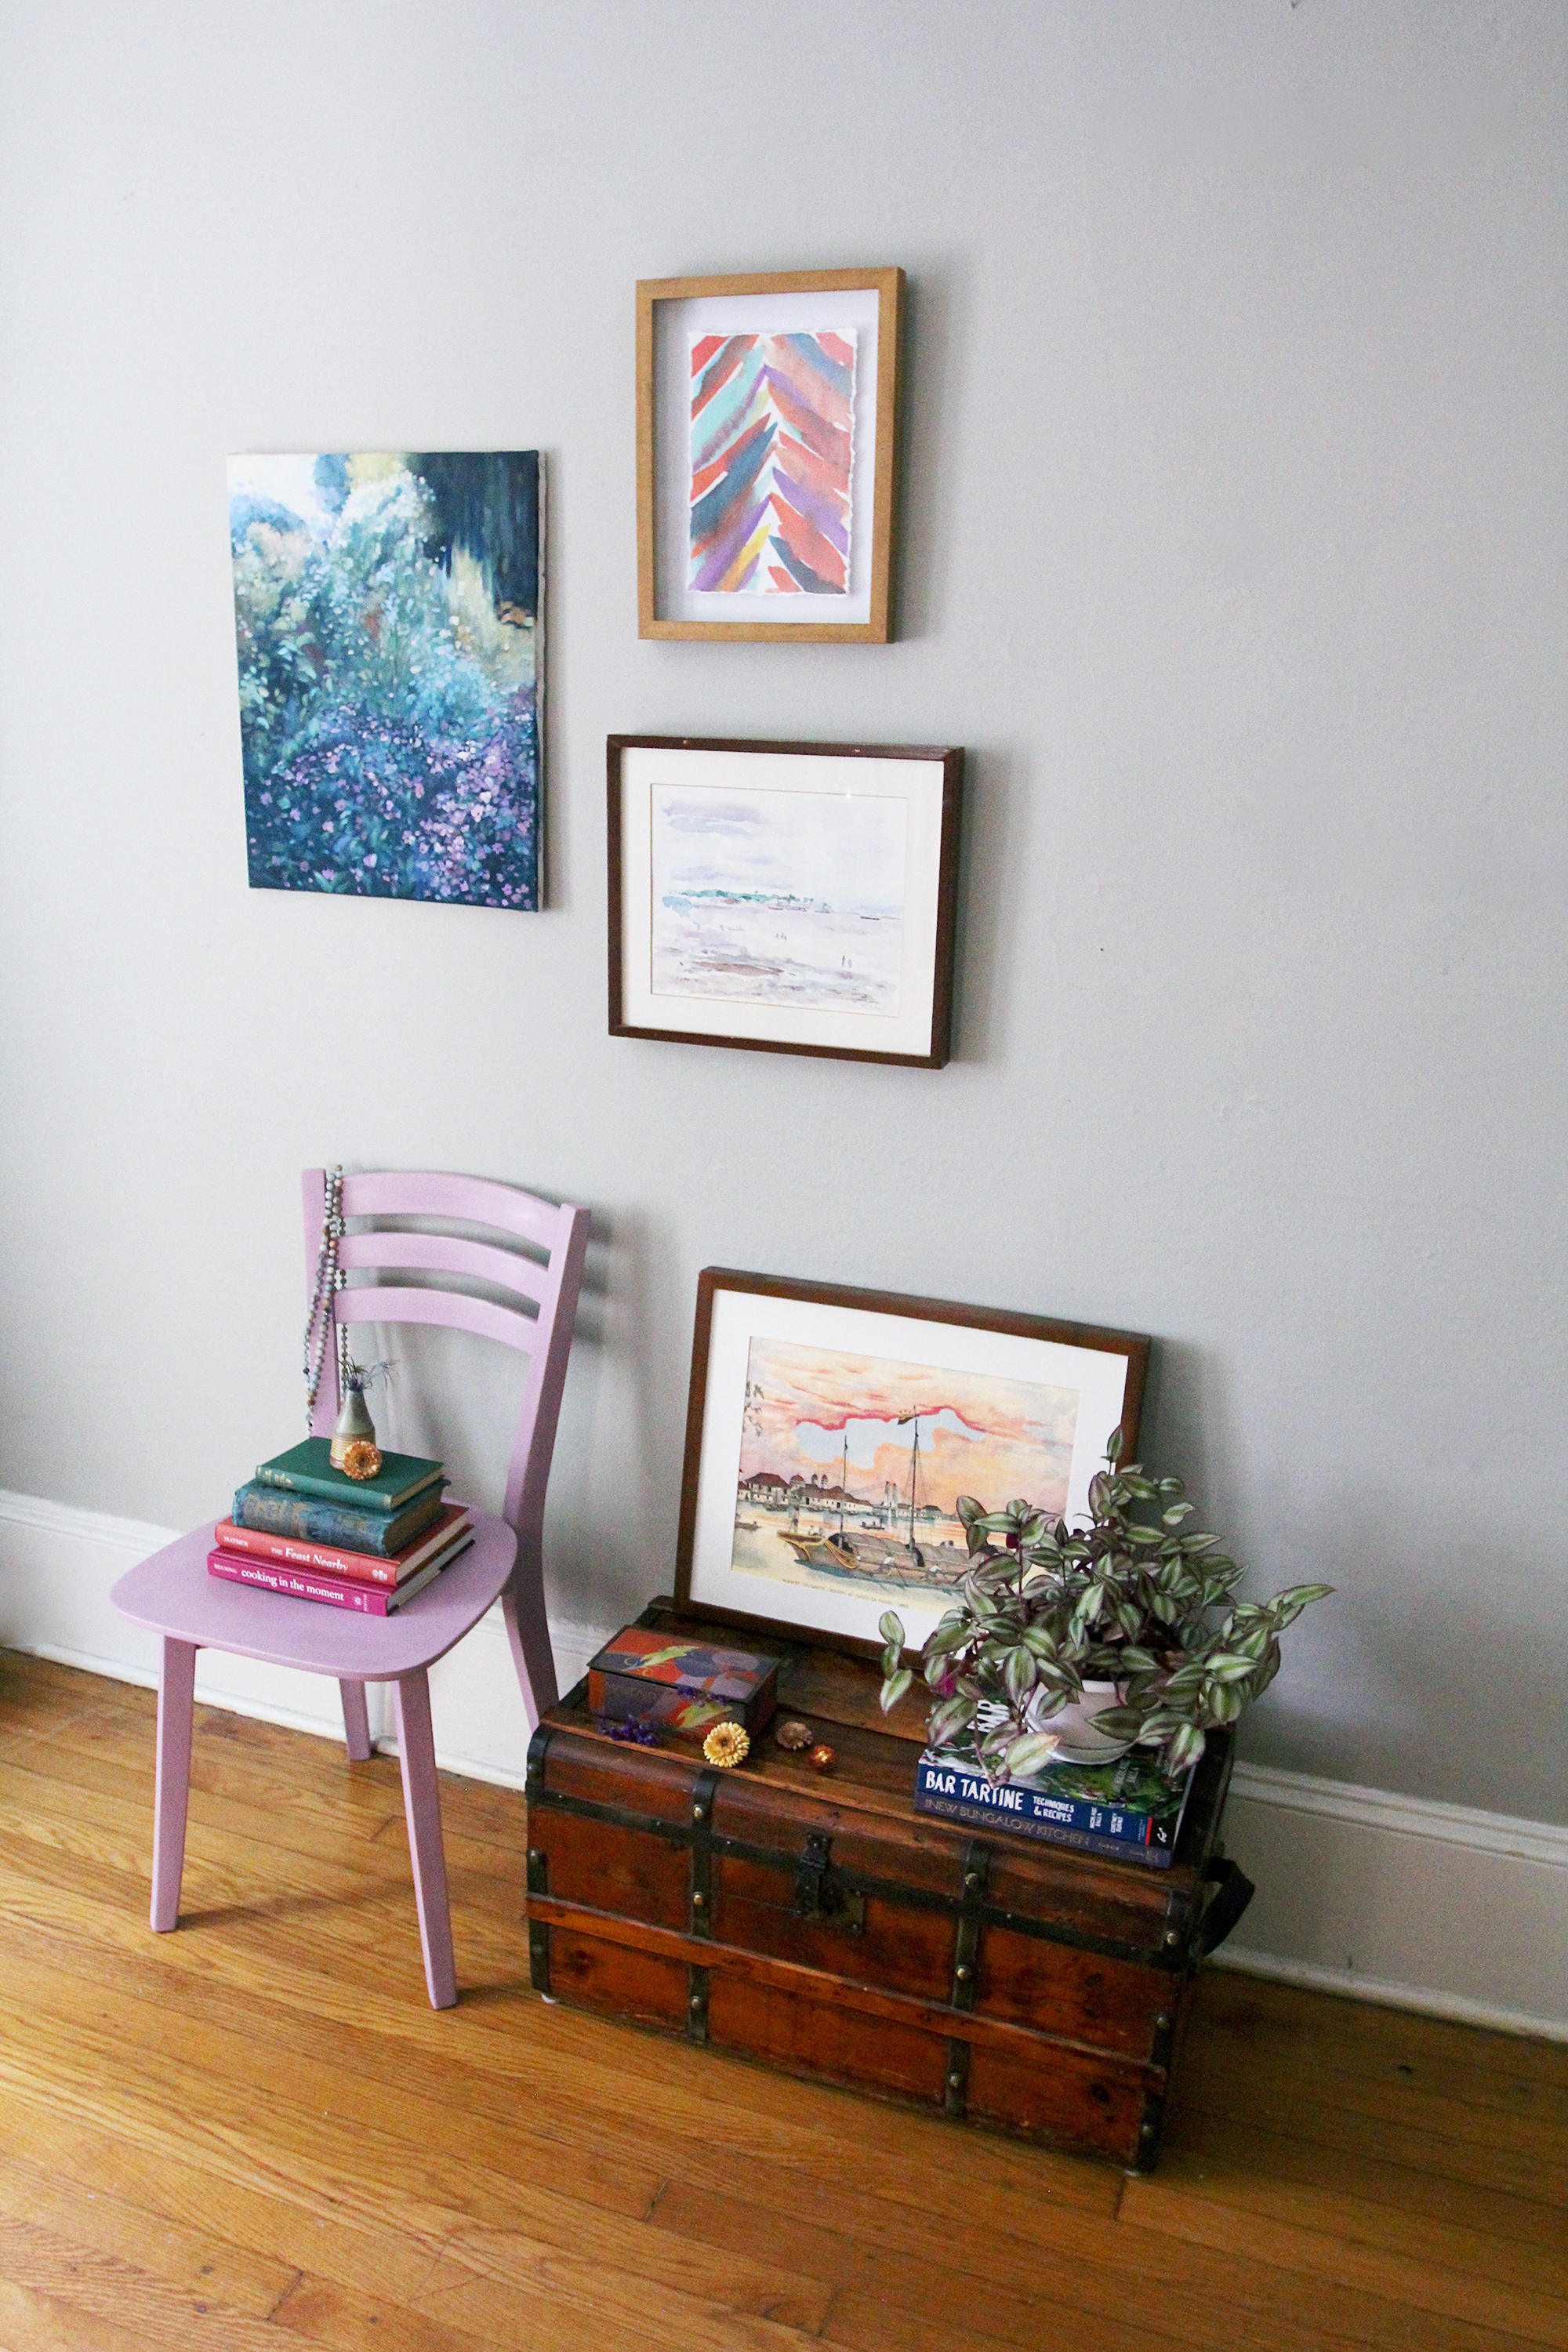 jo-torrijos-a-simpler-design-atlanta-painted-furniture-lilac-chair-annie-sloan-henrietta-3.jpg